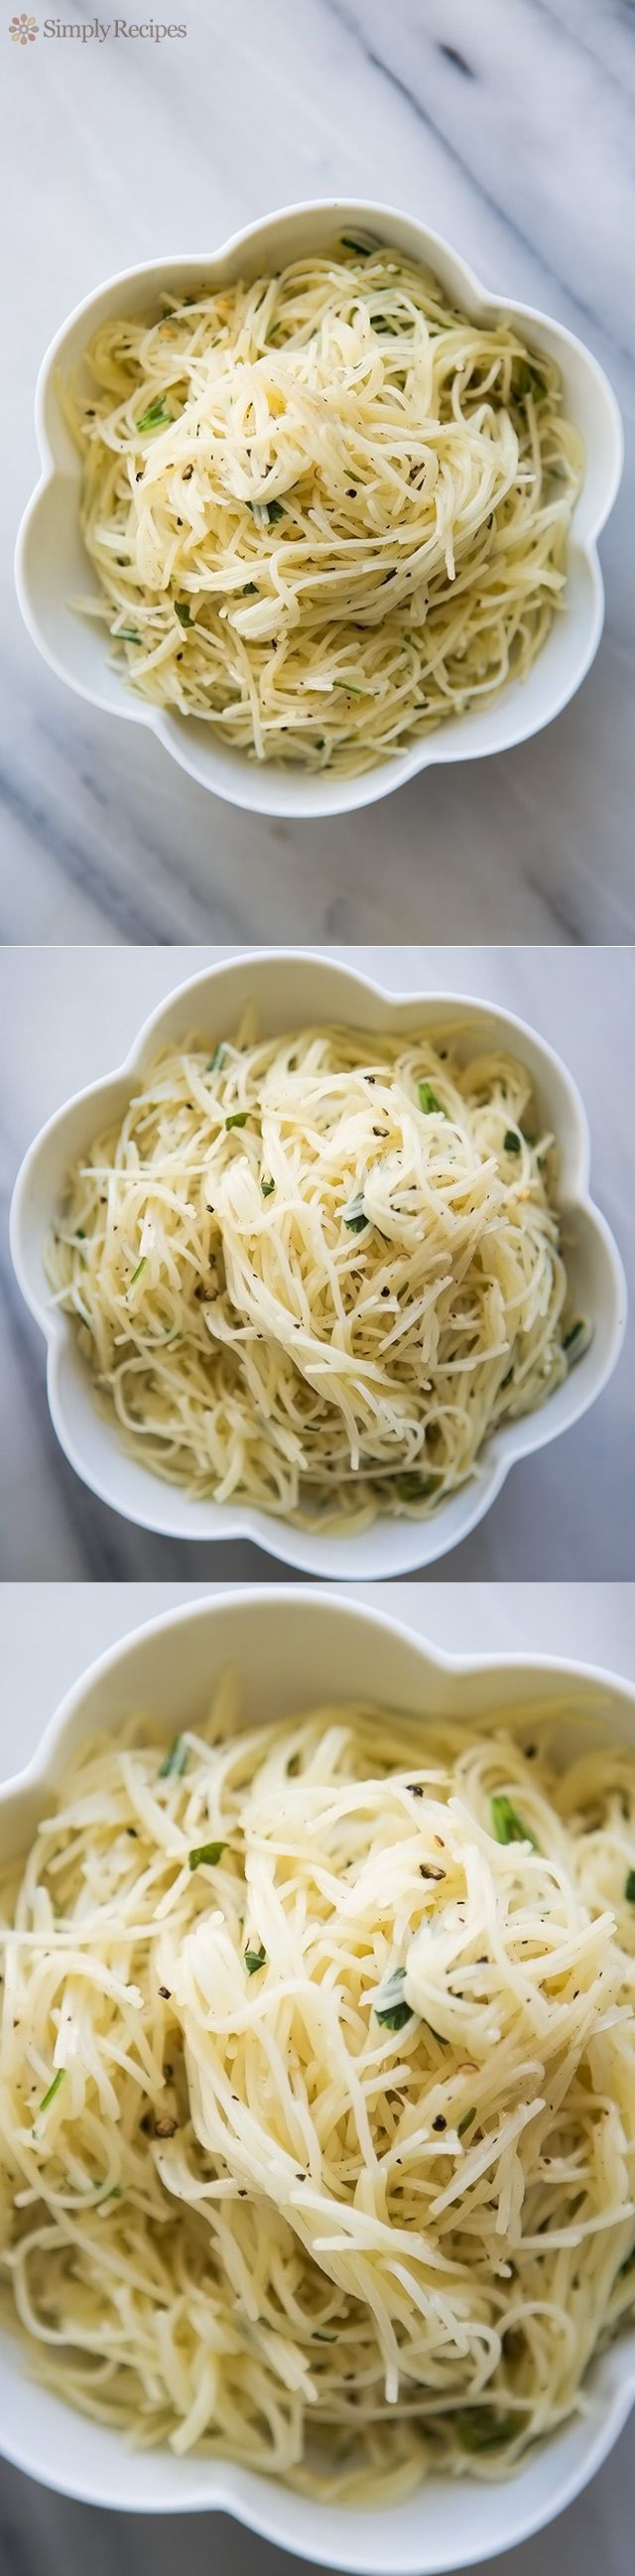 Hair Pasta with Garlic, Herbs, and Parmesan ~ Simple angel hair pasta side, with an olive oil, garlic, herb sauce. ~  (Chicken Breastrecipes)